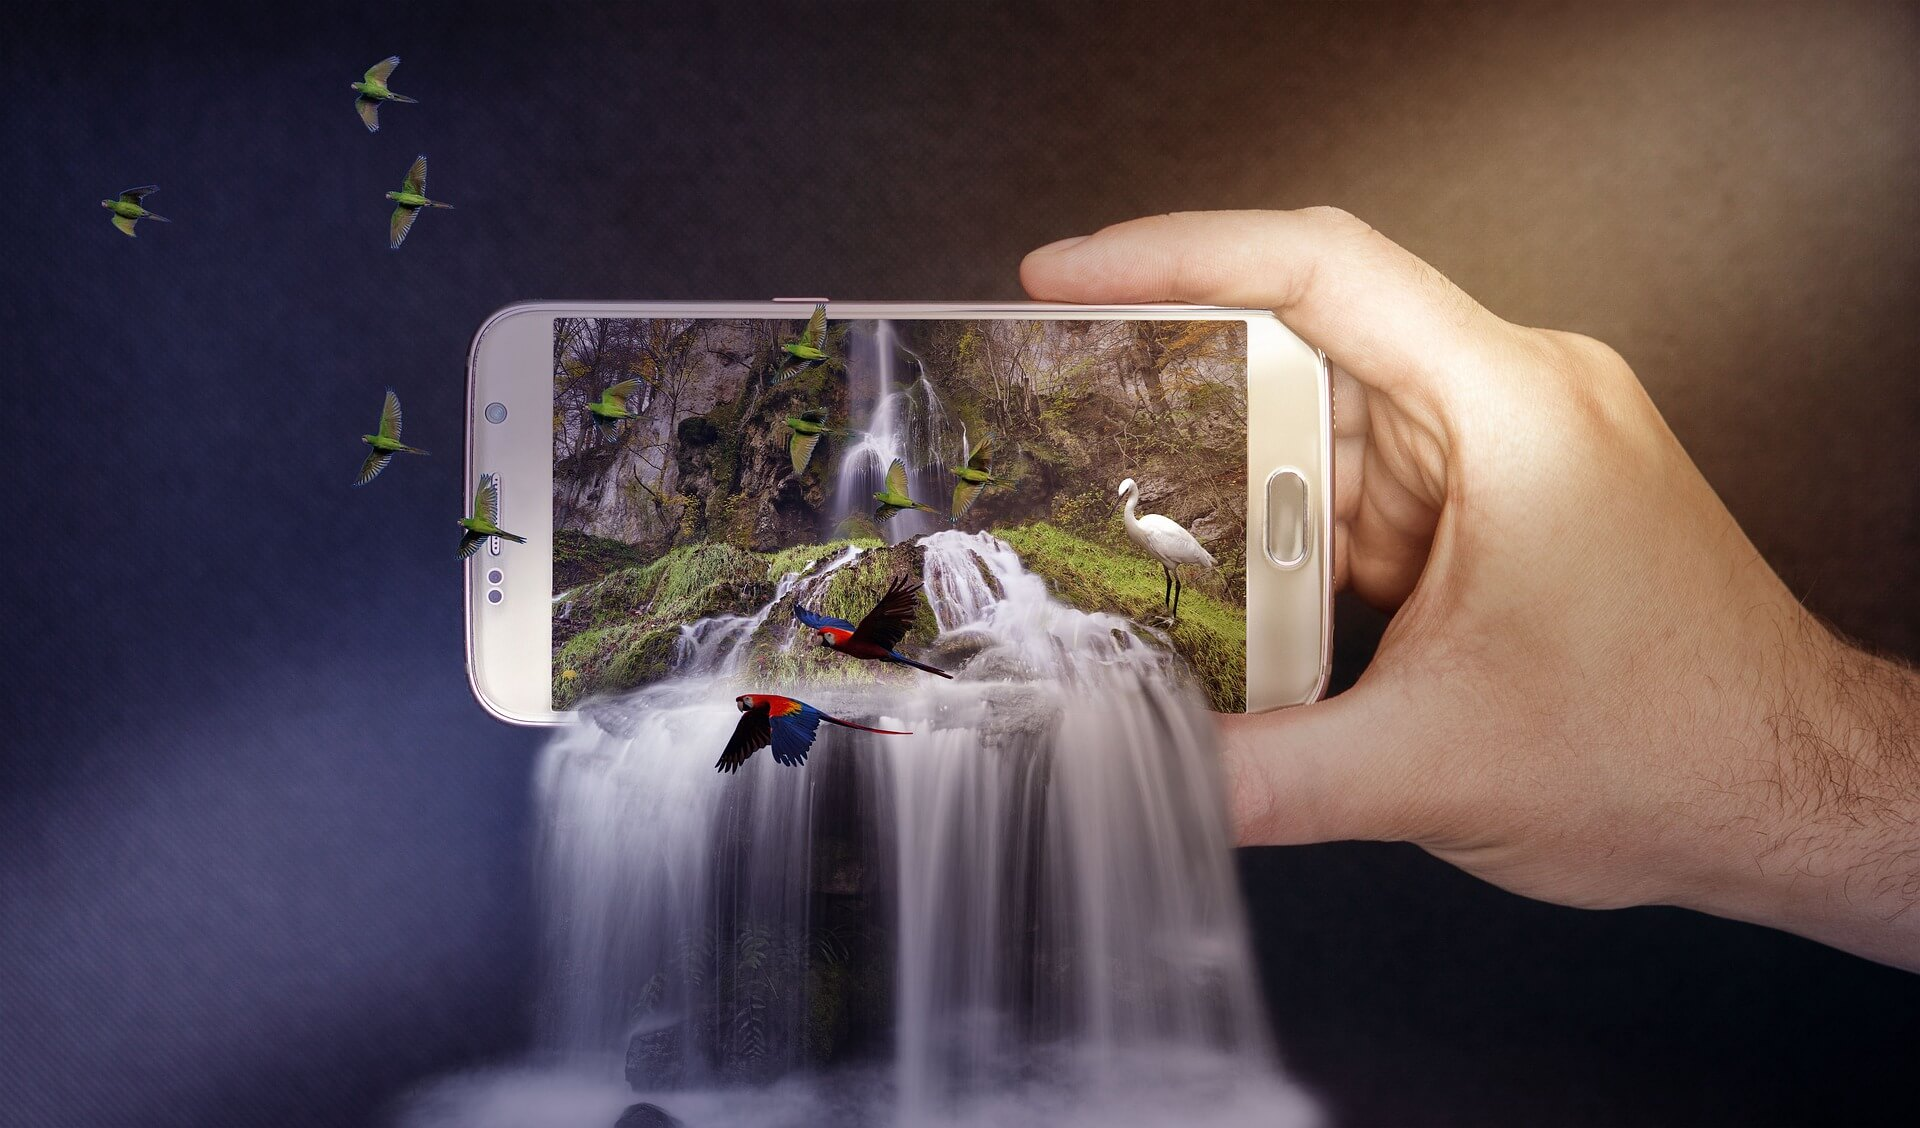 Live Wallpaper For Android Smartphone